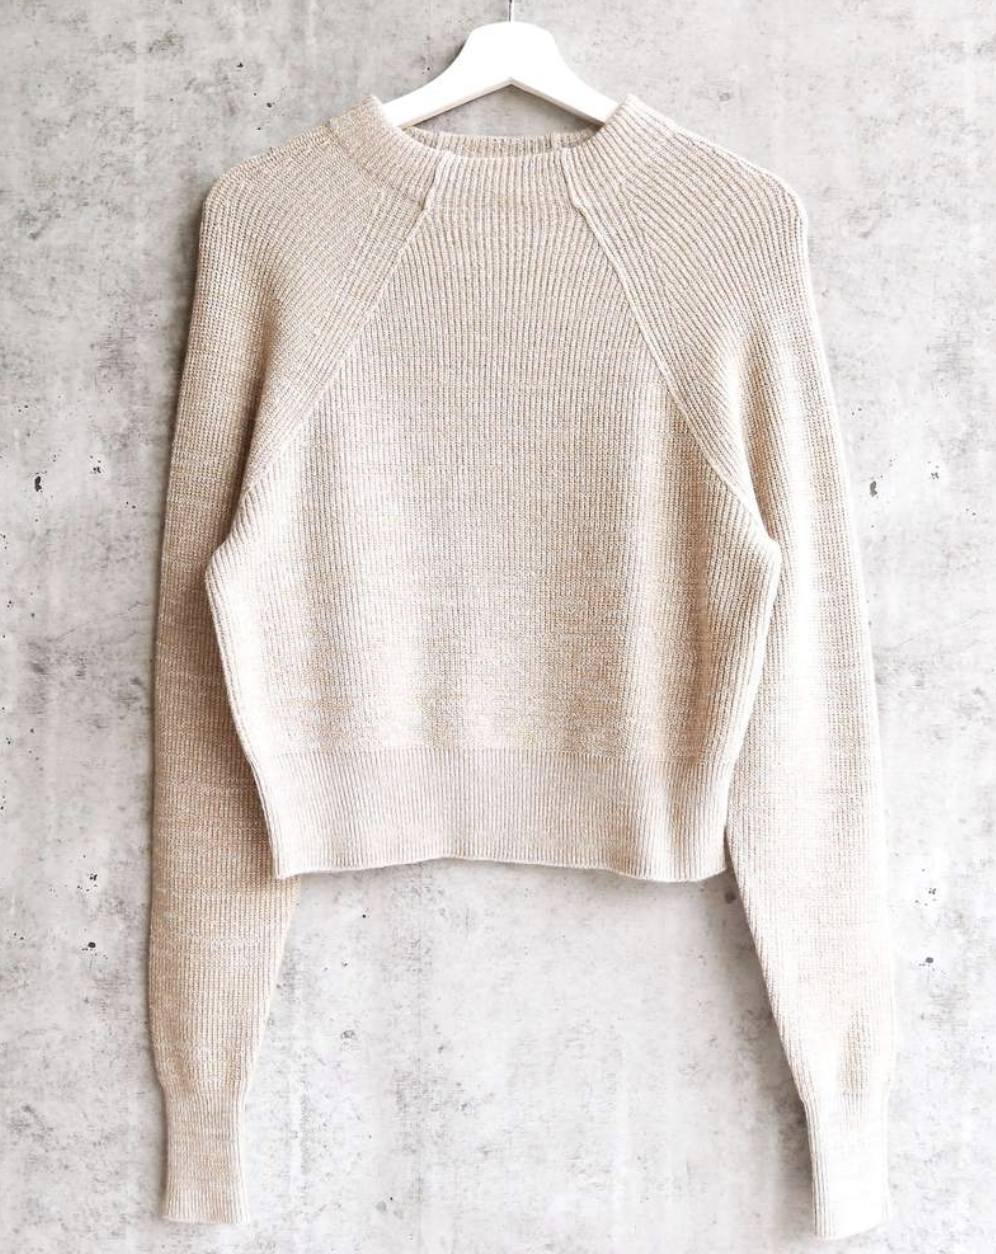 SWEATER - This mock neck knit sweater from Free People will look great on her. On sale right now for $46 at Nordstrom.